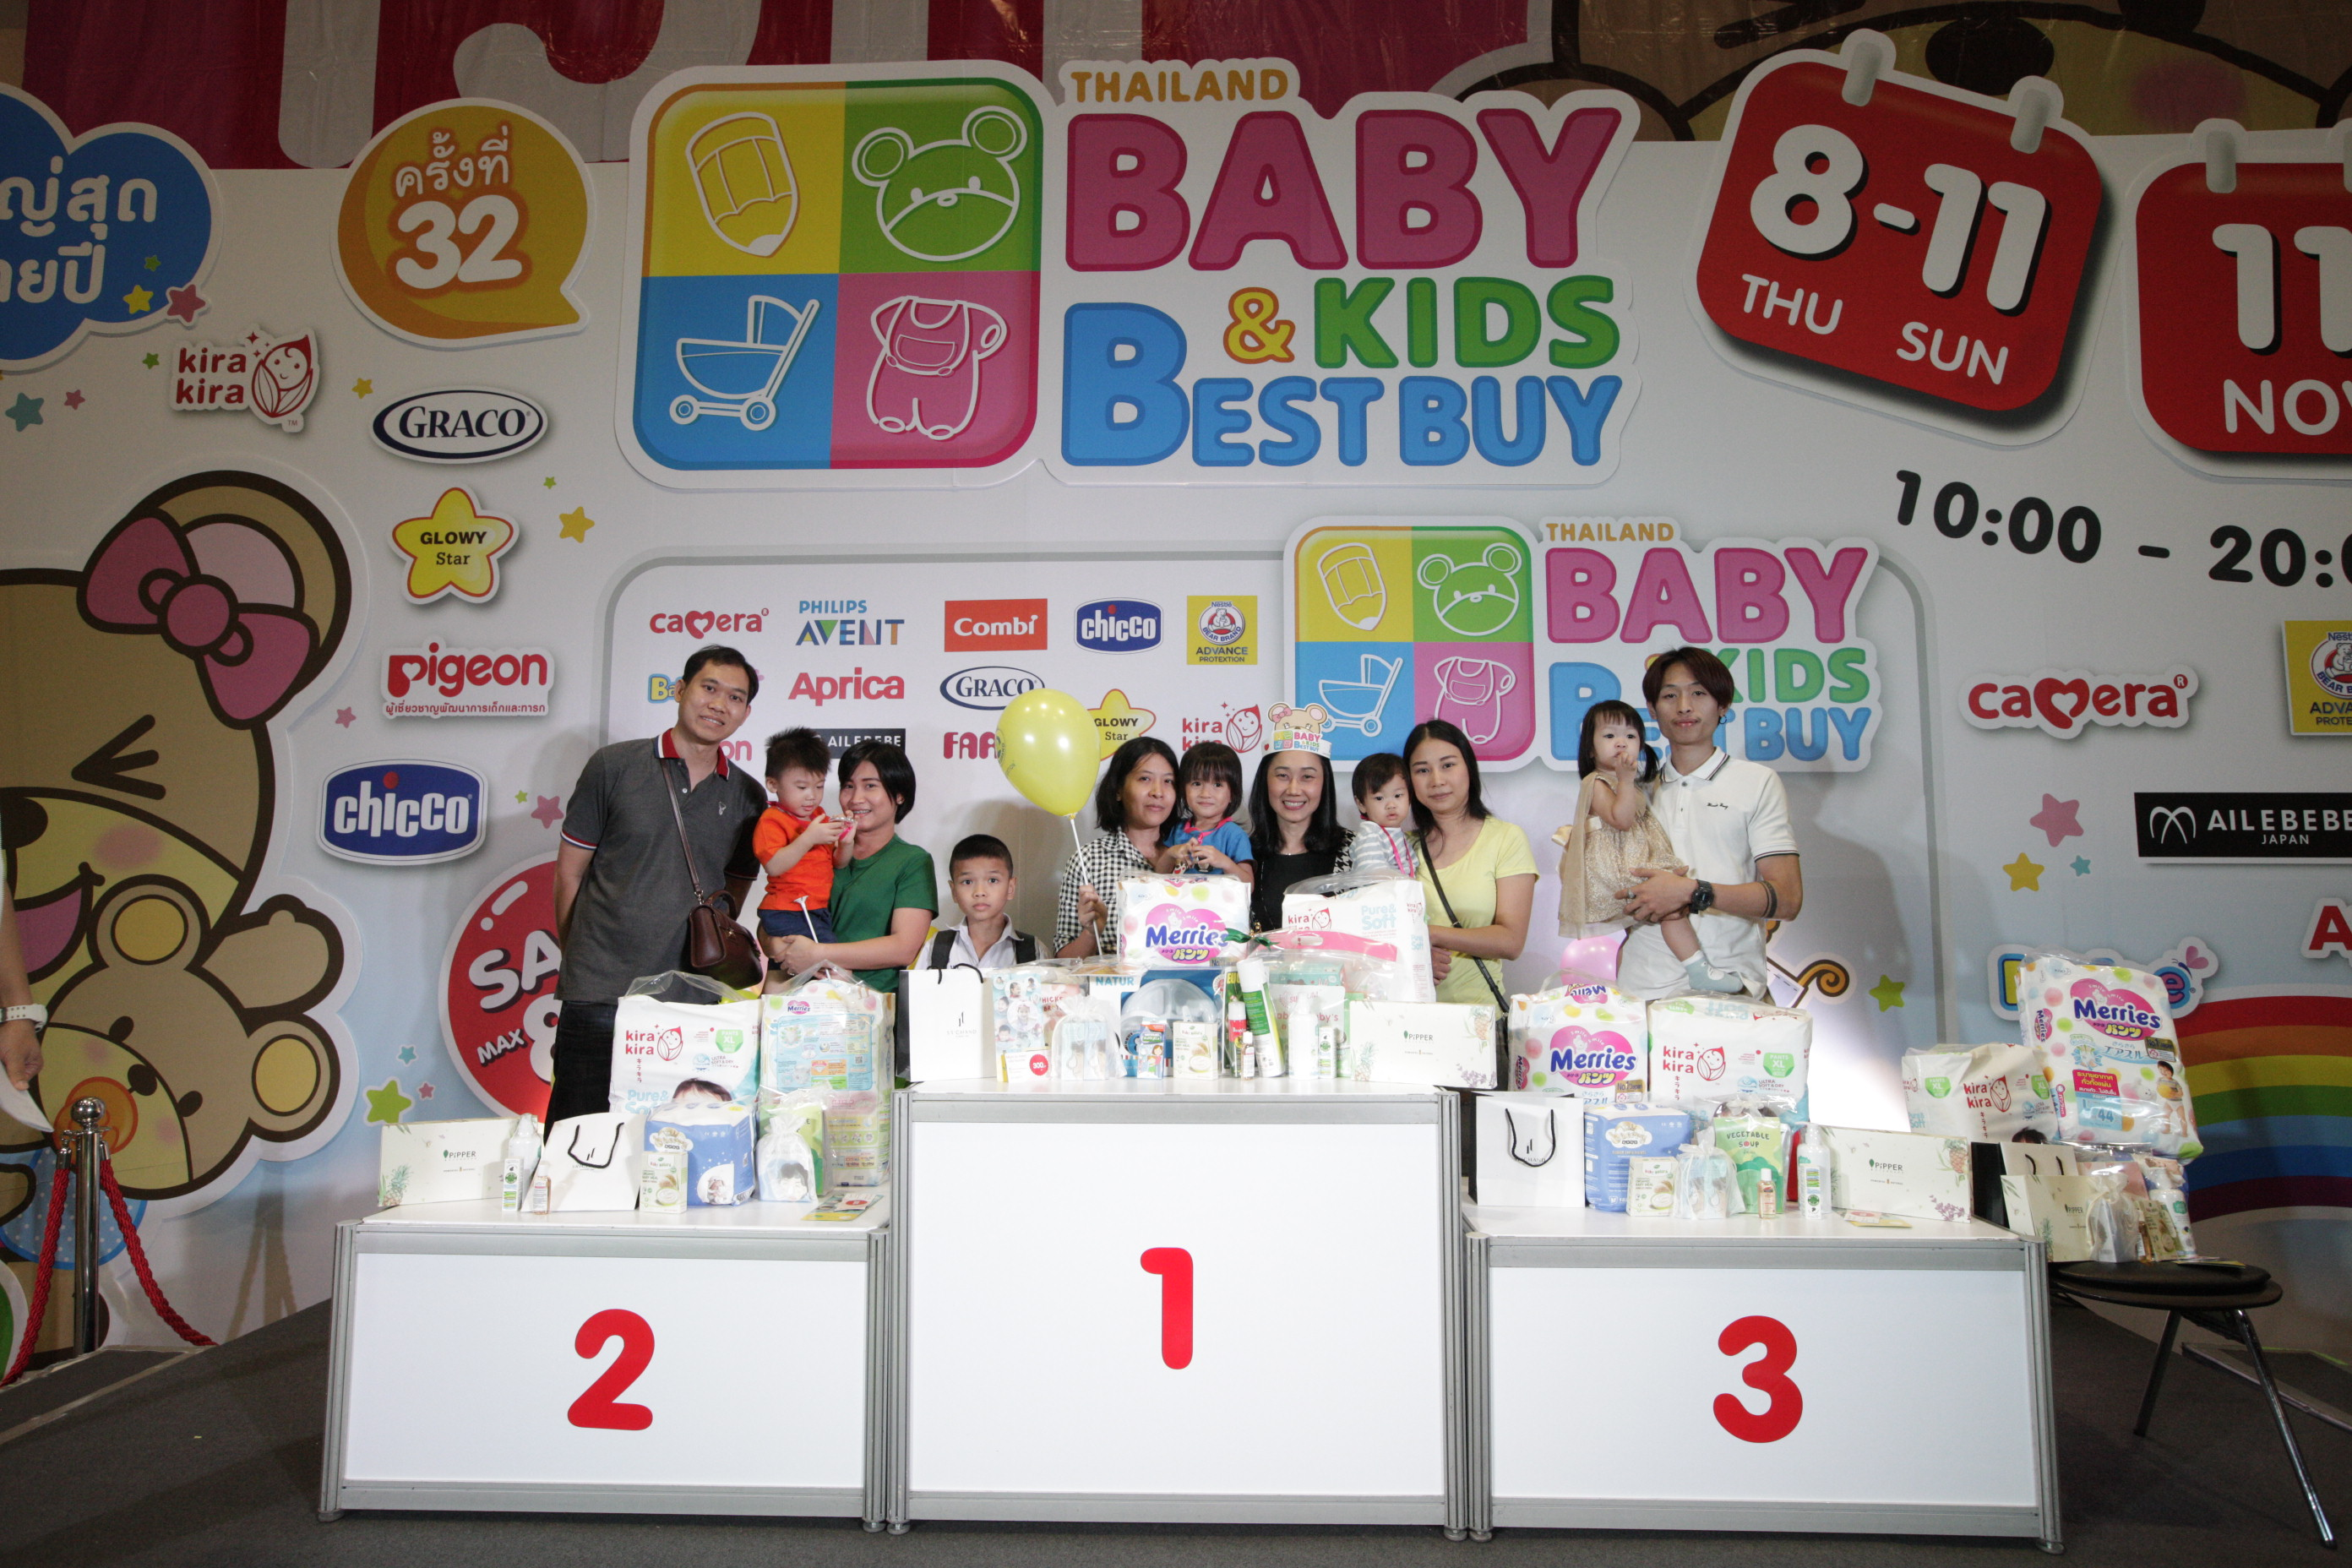 Thailand Baby & Kids Best Buy ครั้งที่ 32